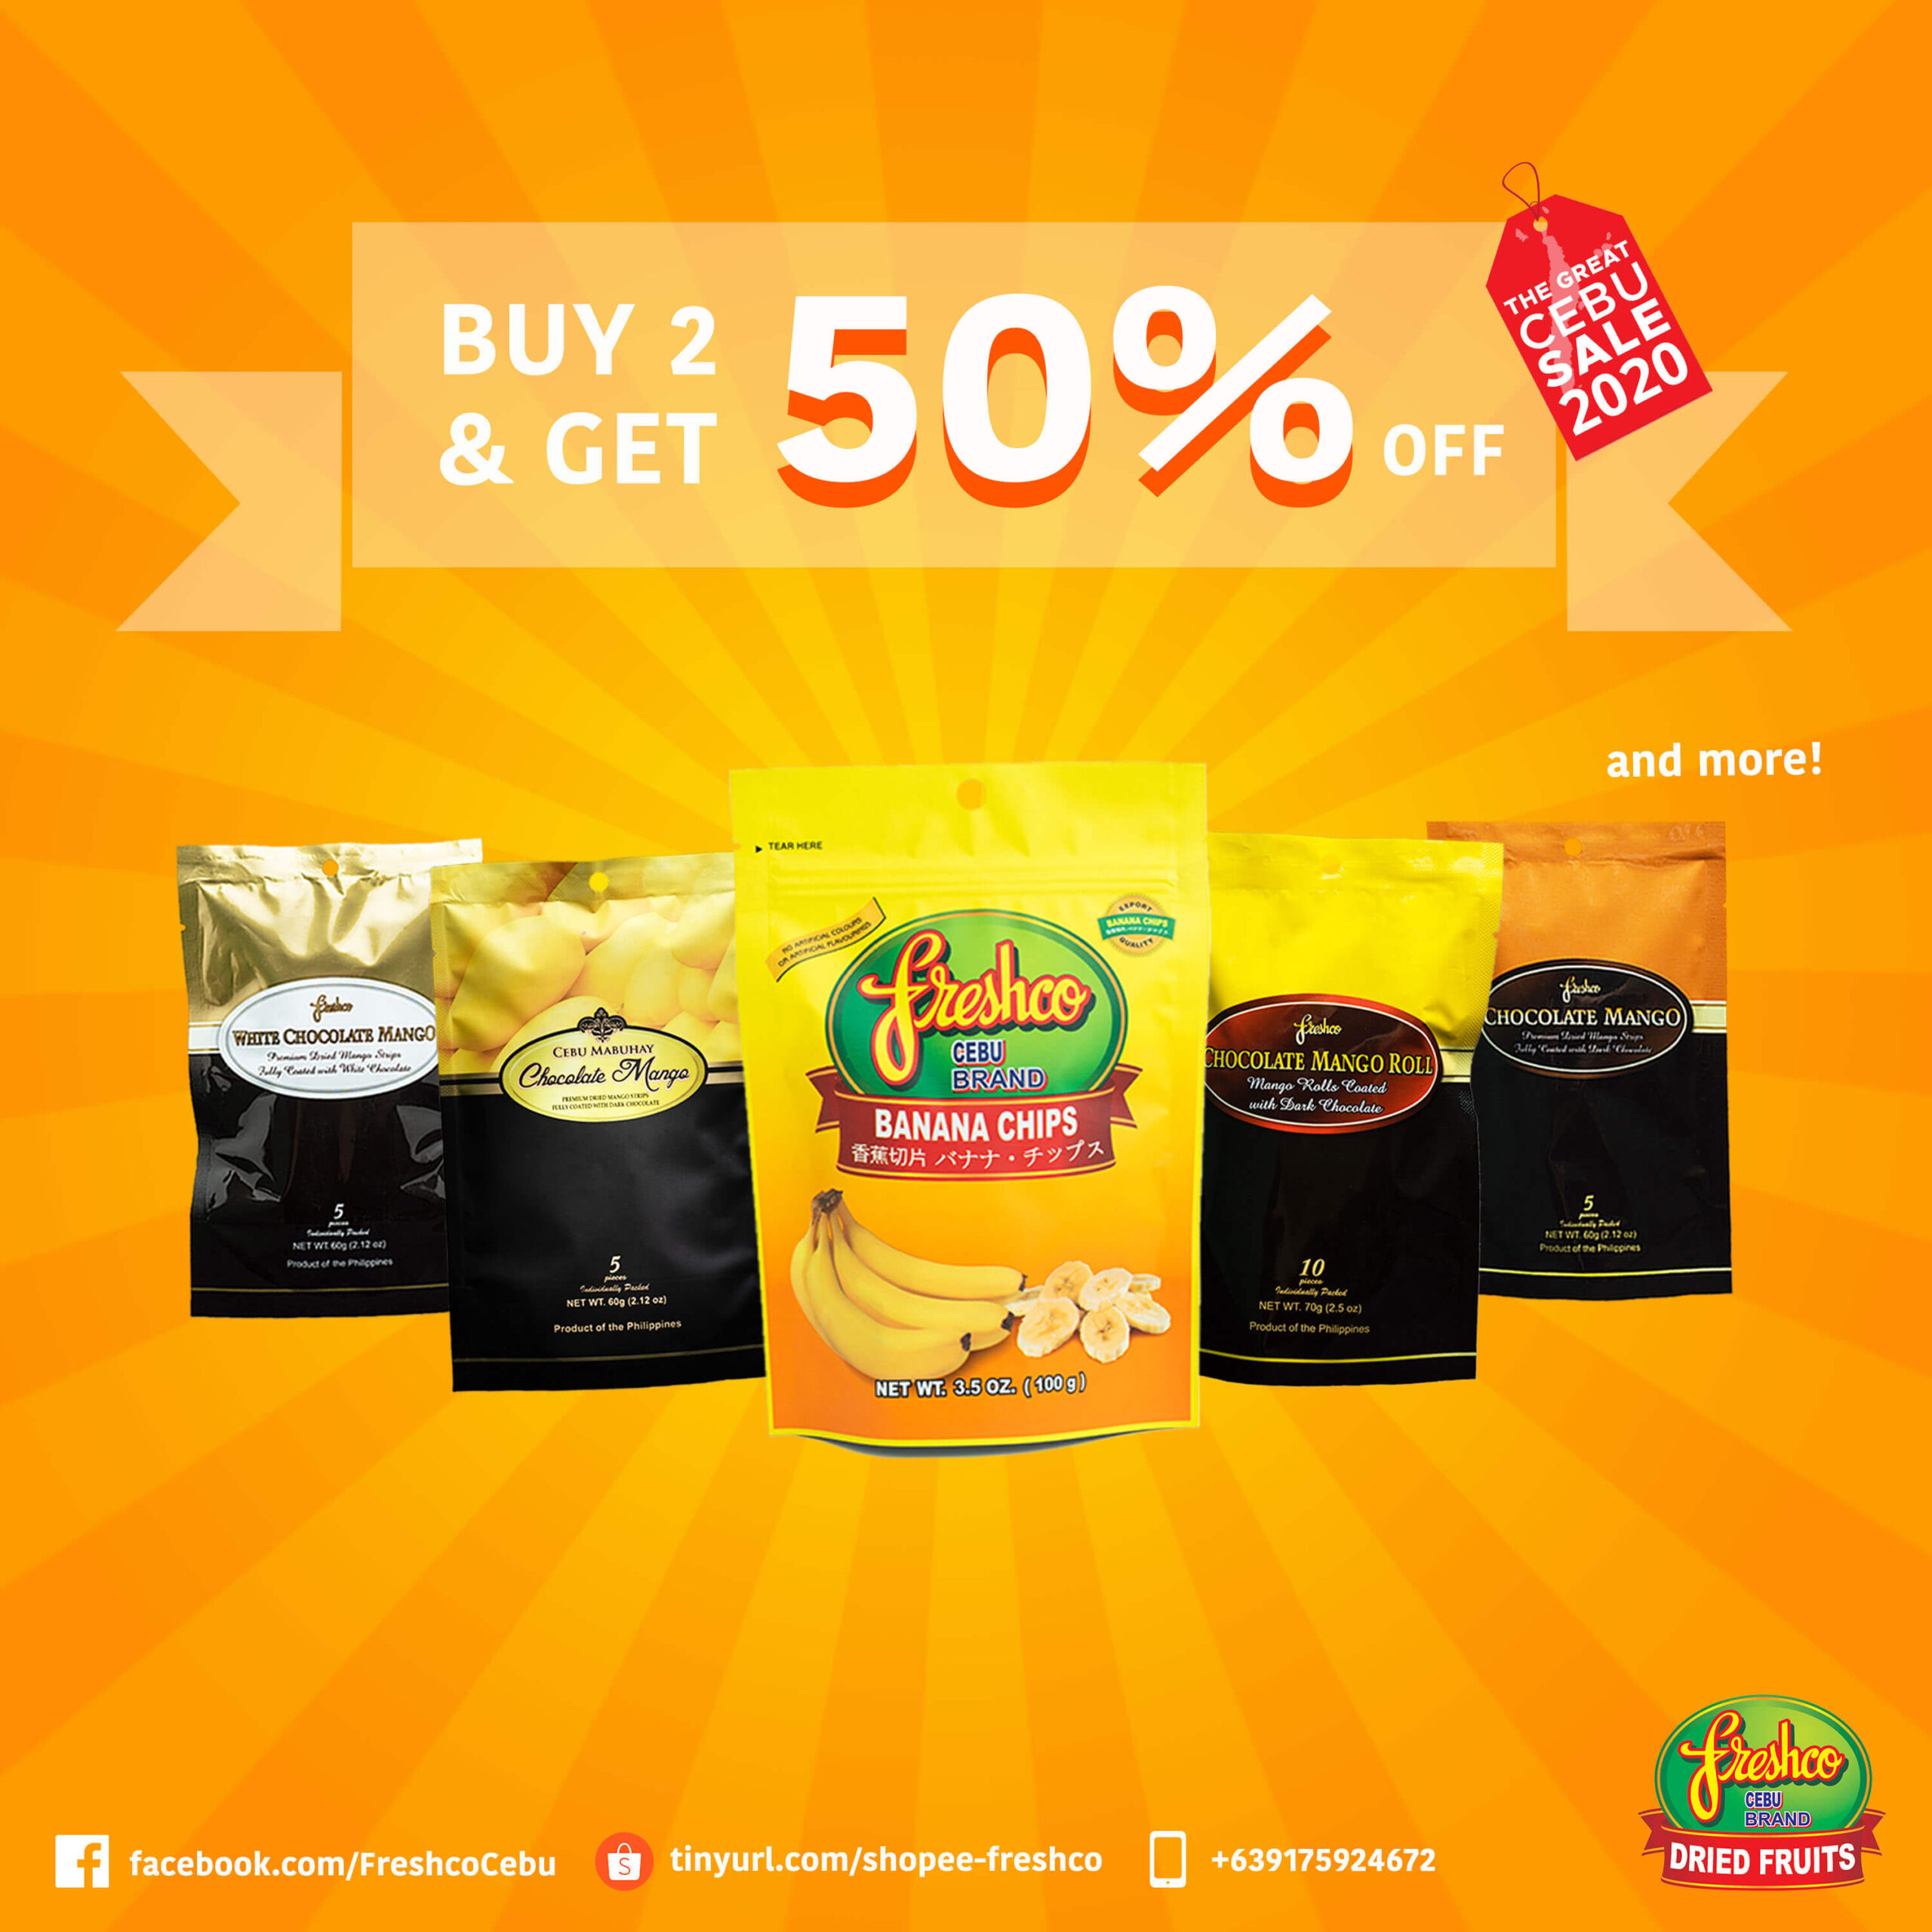 Freshco offers buy 2 and get 50% off promo